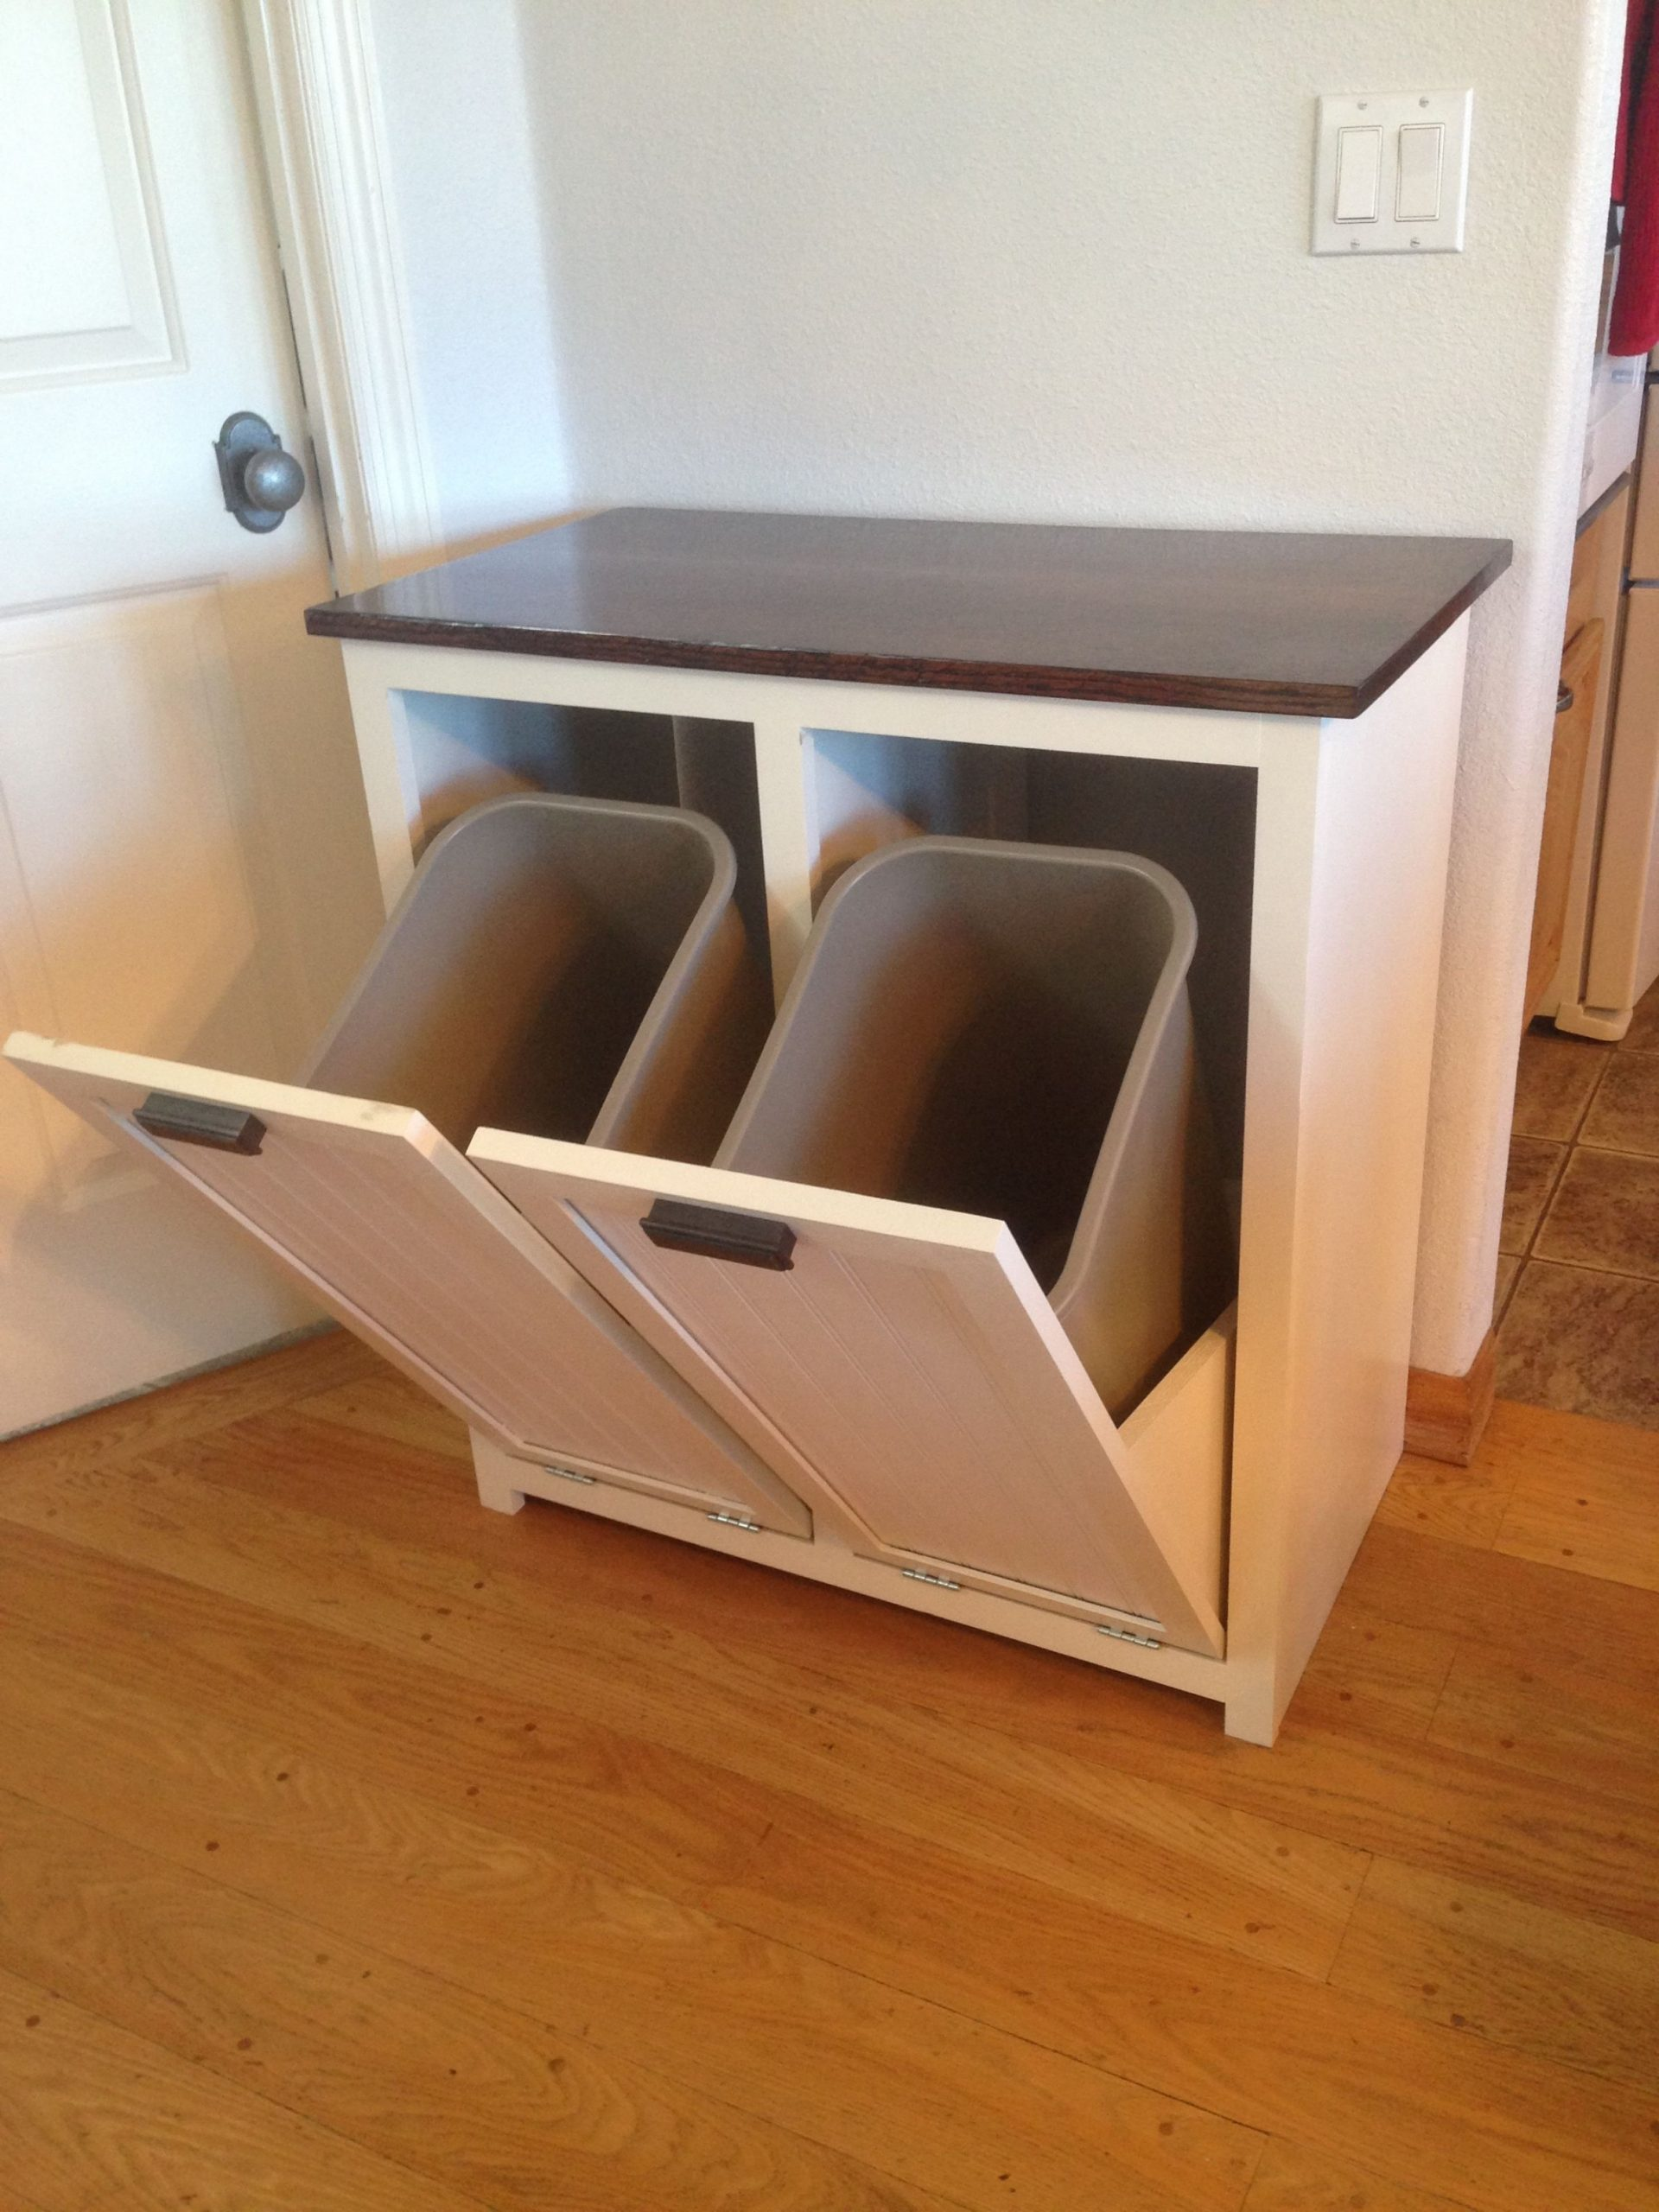 My wife asked me to build something to hide the trash and  - Kitchen Bin Storage Cabinet